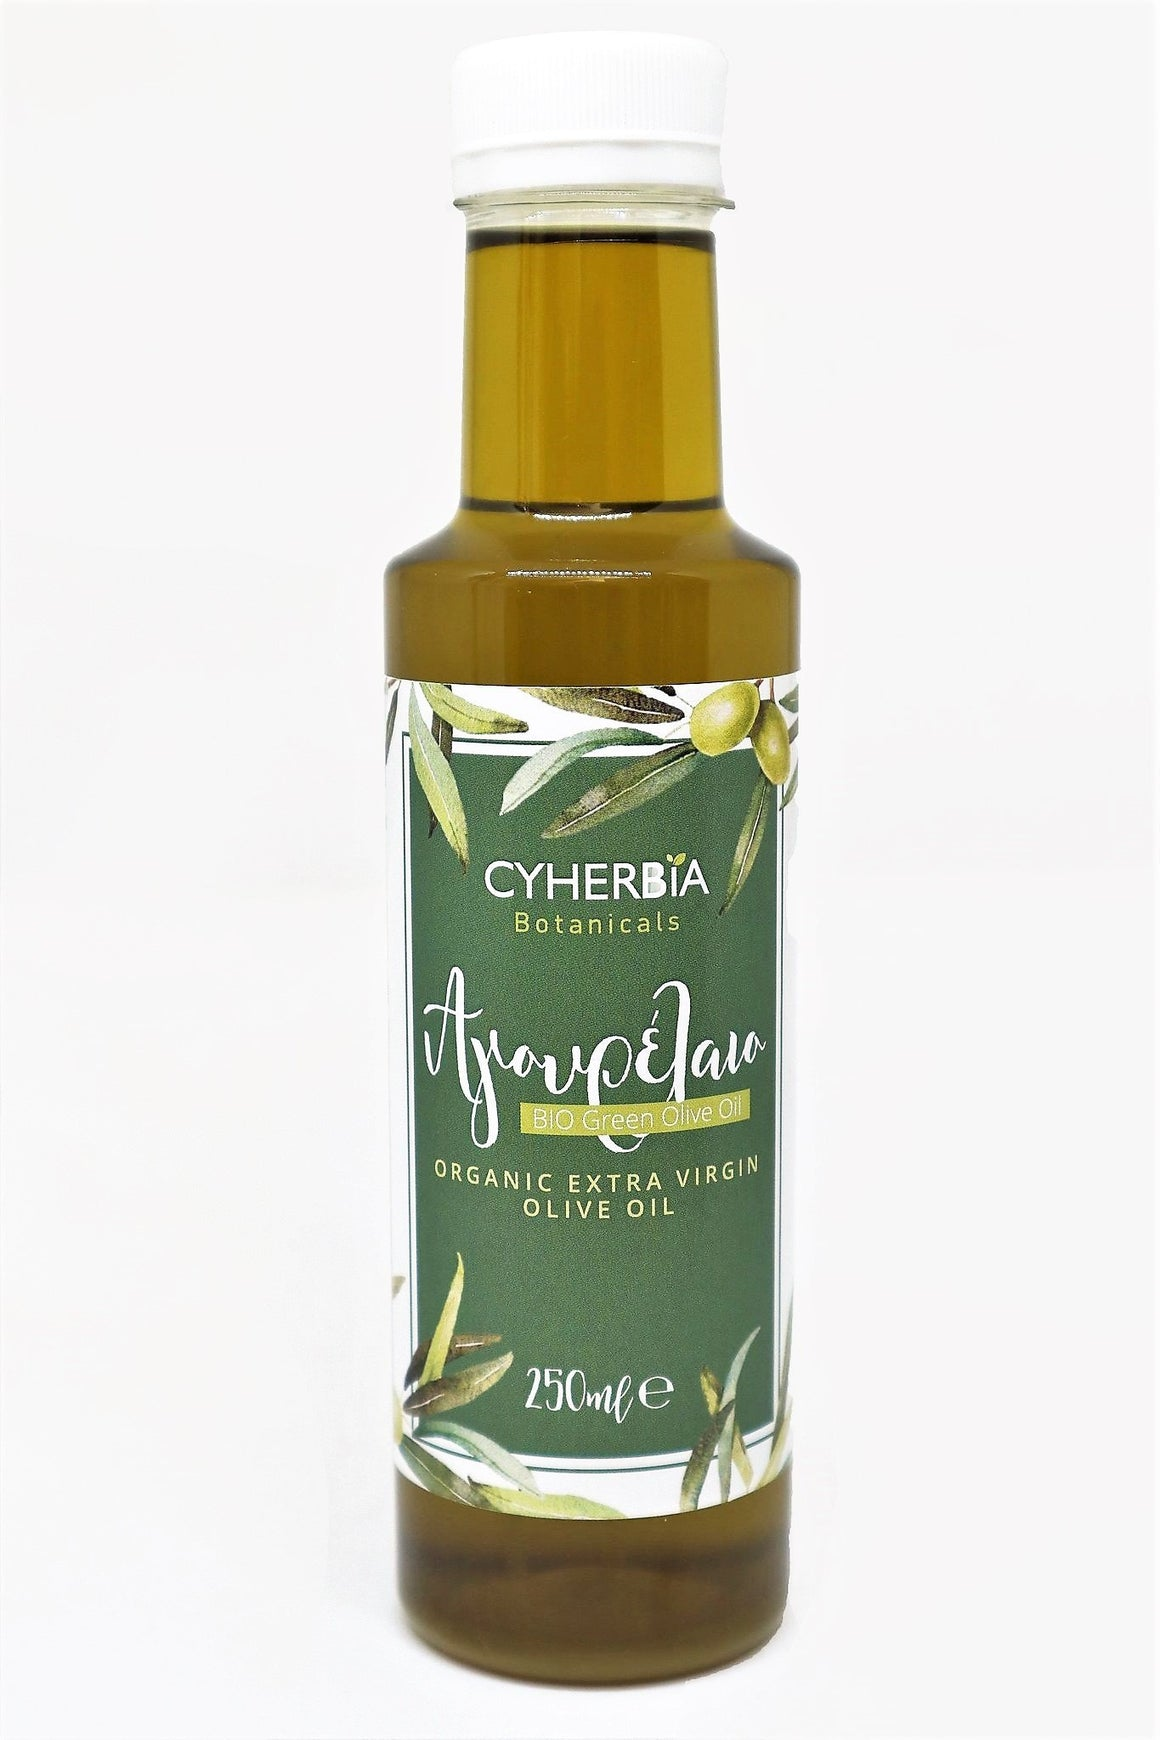 Olive Oil from Green Olives